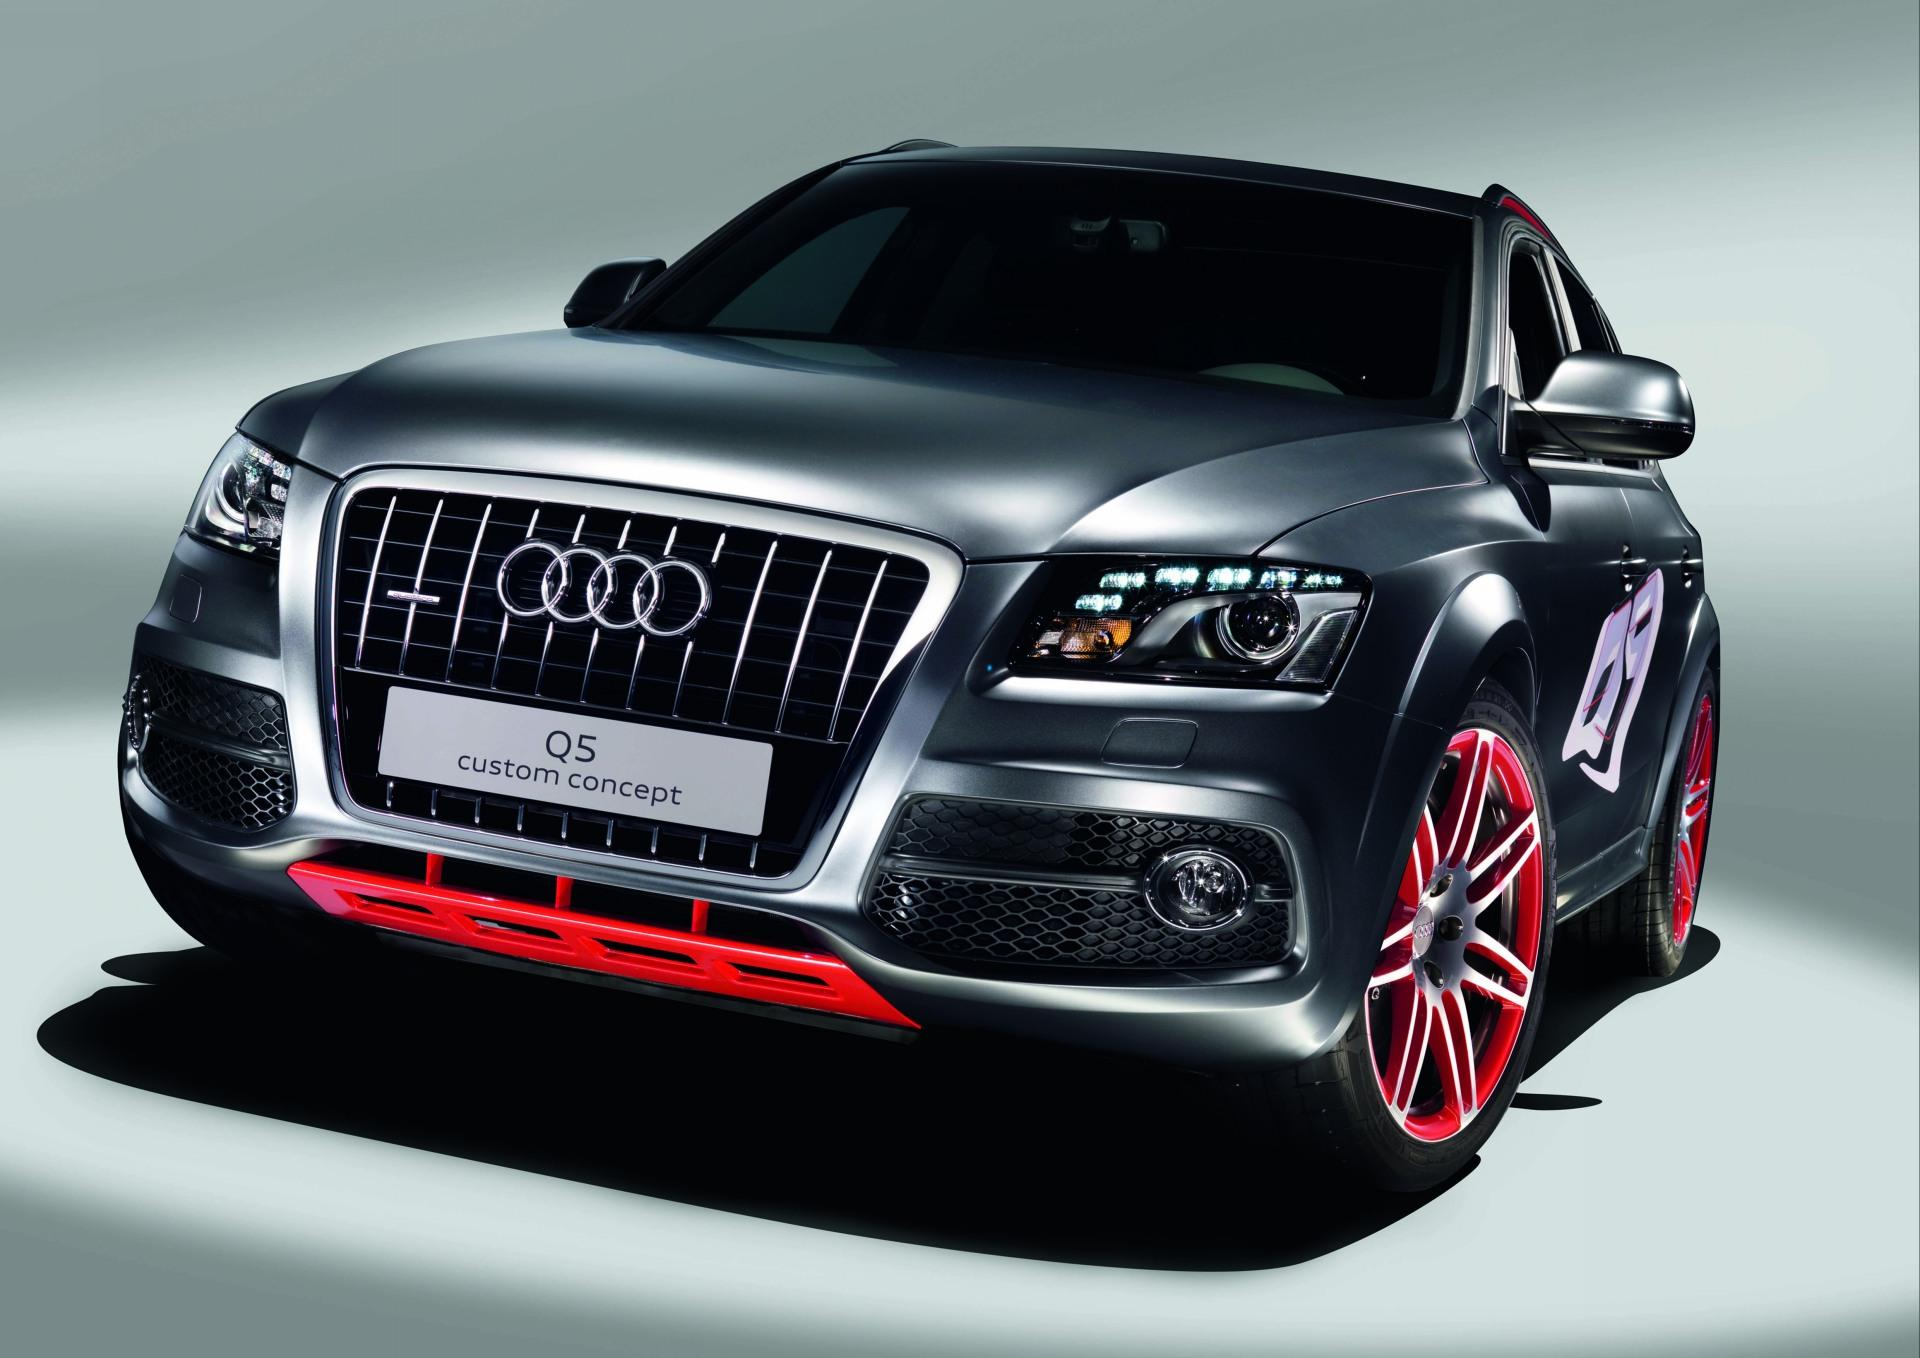 A1 Auto Sales >> 2009 Audi Q5 Custom Concept News and Information, Research ...